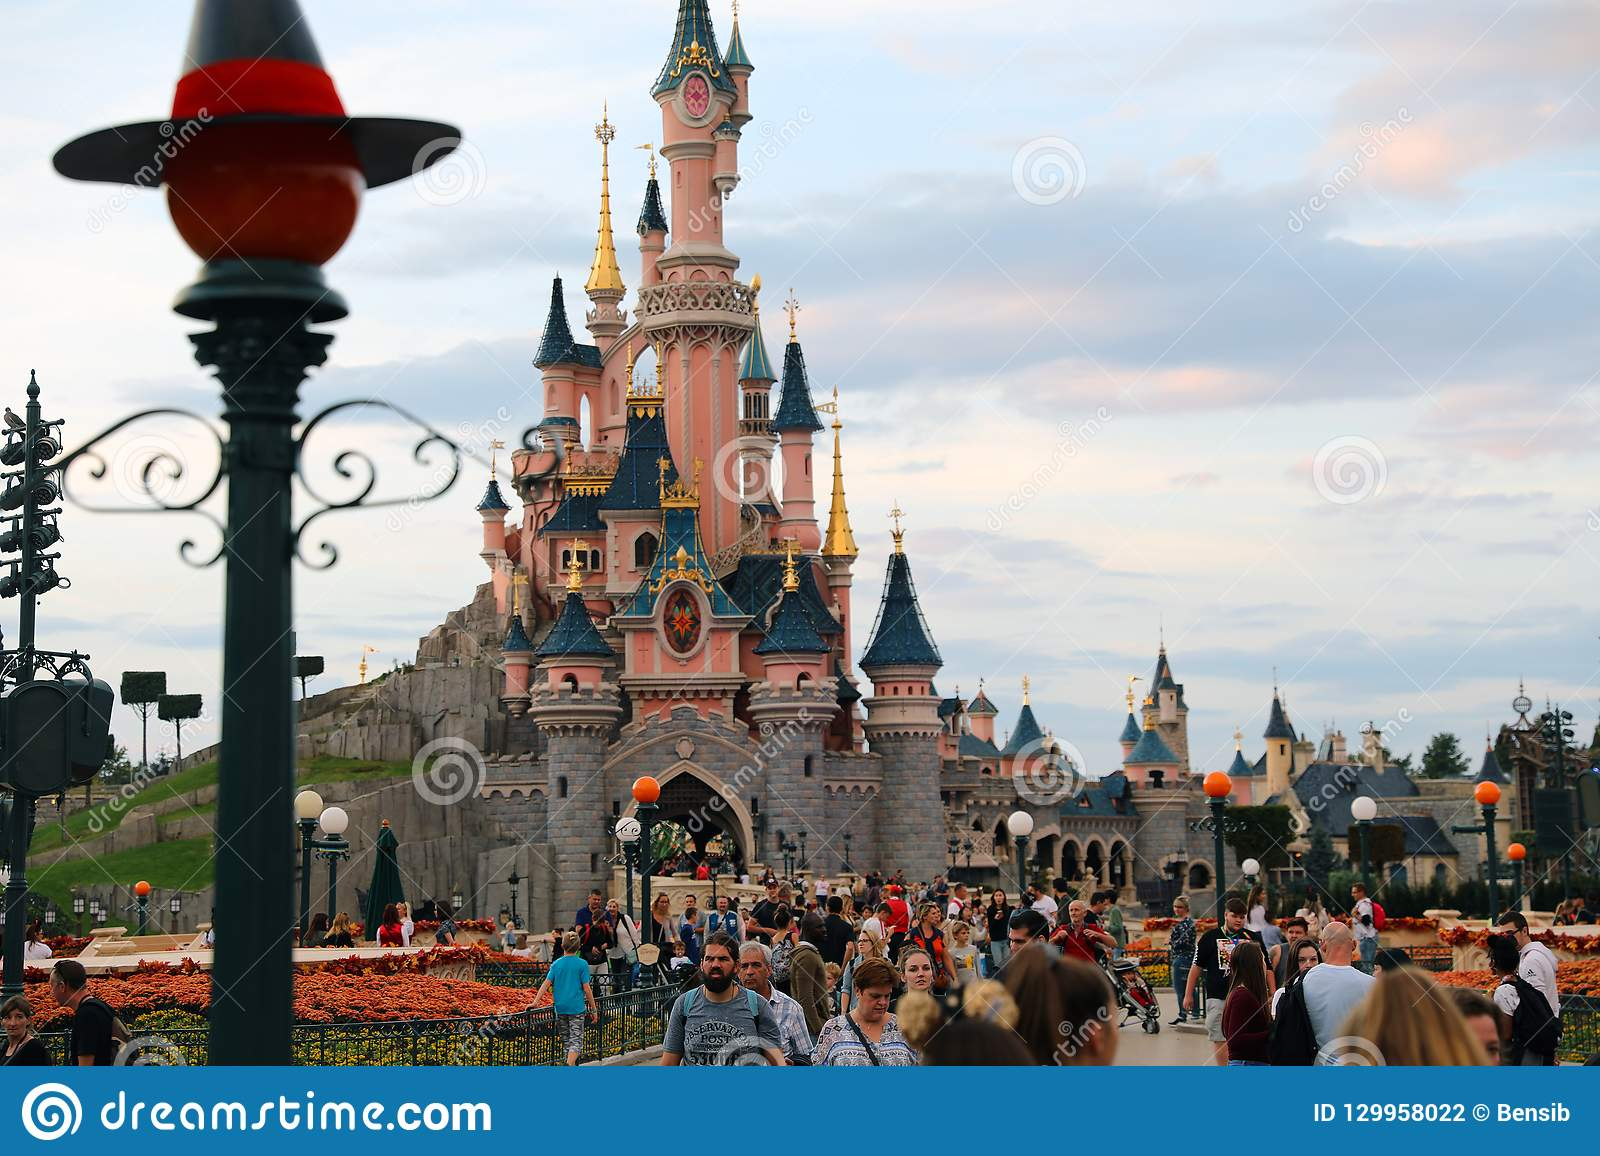 Disneyland Paris Halloween Decorations.Sunset At Sleeping Beauty Castle At Disneyland Paris With